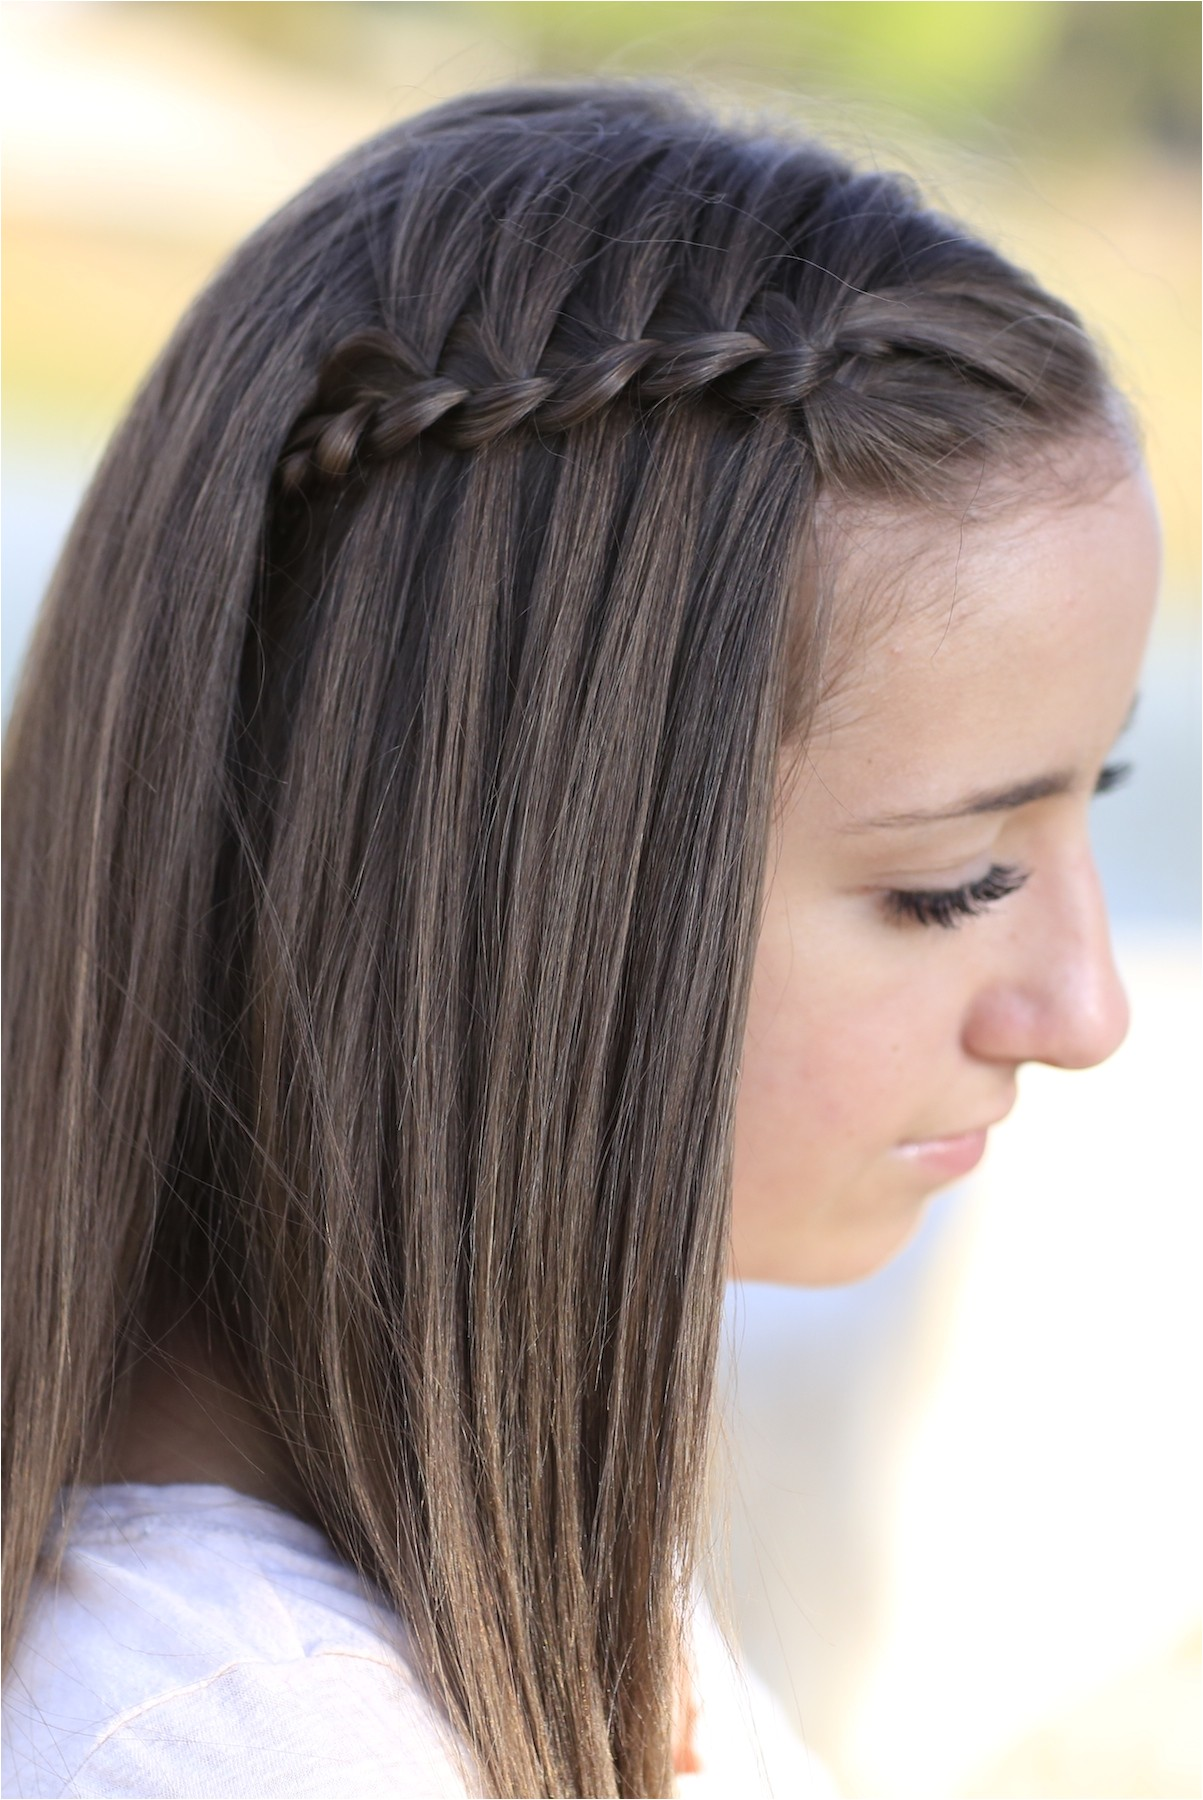 Easy Hairstyles for 13 Year Olds Cute Hairstyles for 4 Year Olds